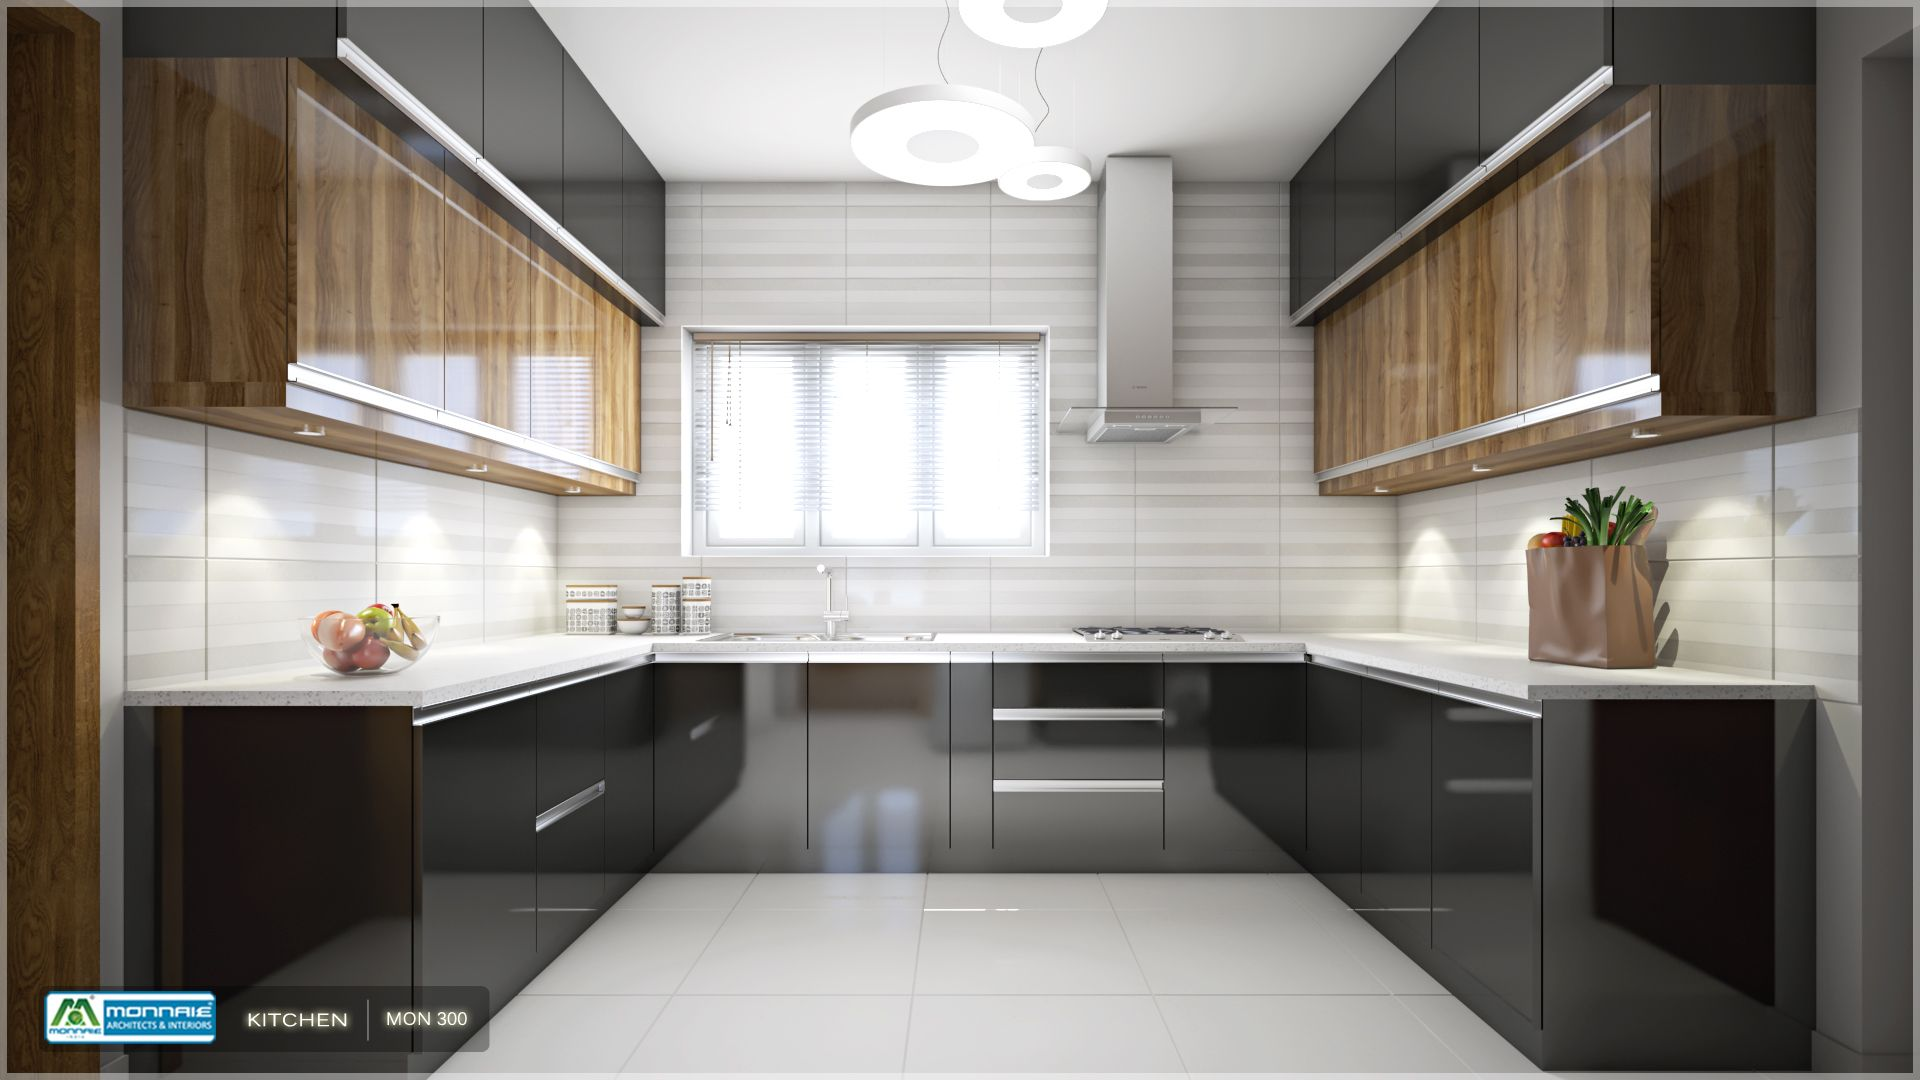 Monnaie Interiors Is One Of The Top Interior Designers In Coimbatore We Assure You Quality Inte Kitchen Design Best Kitchen Designs Affordable Interior Design